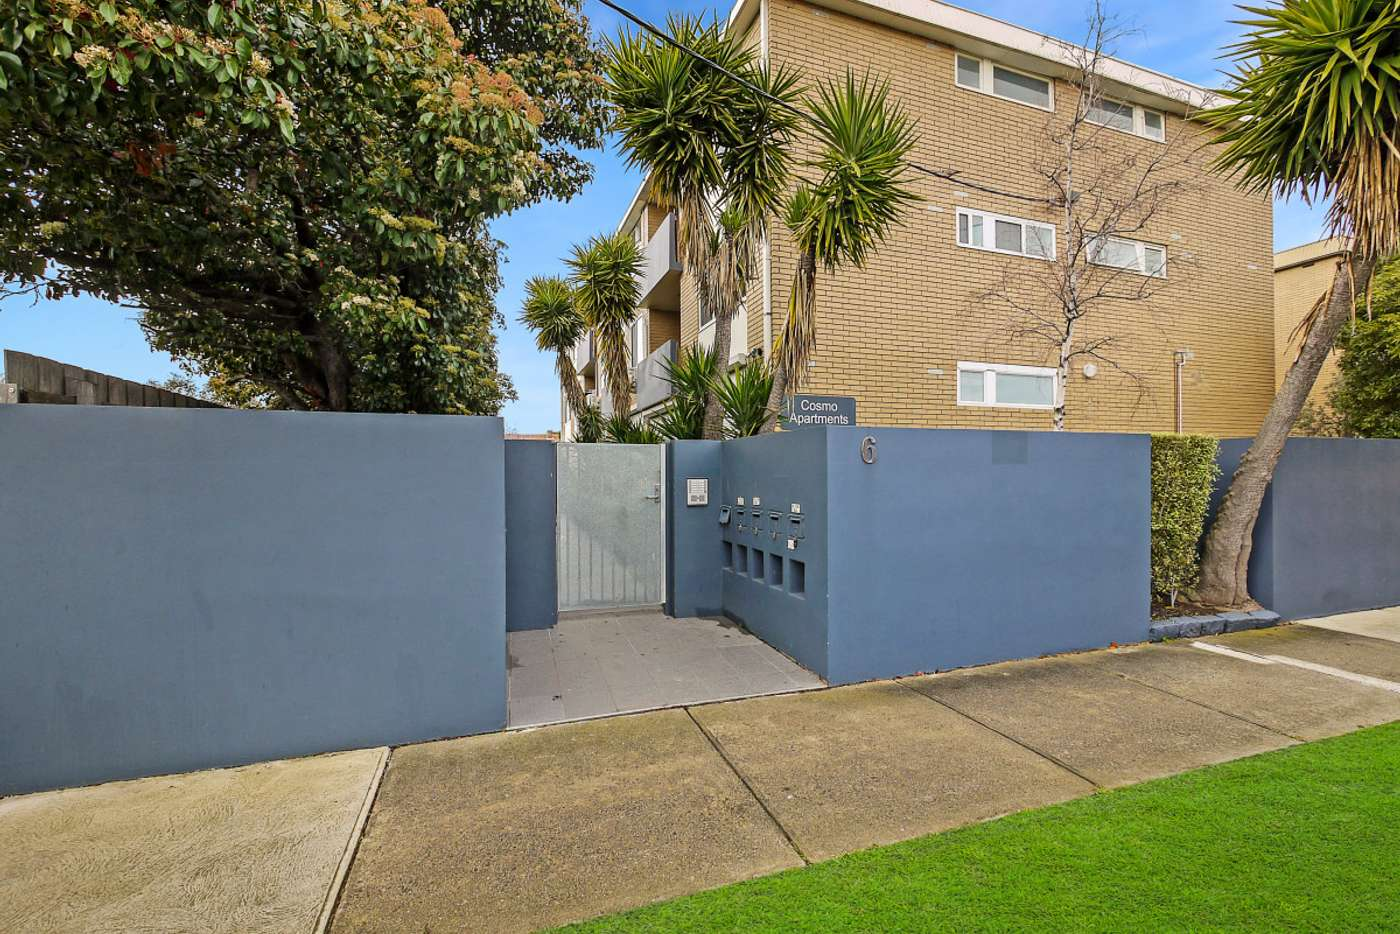 Main view of Homely flat listing, 7/6 Mc Kay Street, Coburg VIC 3058